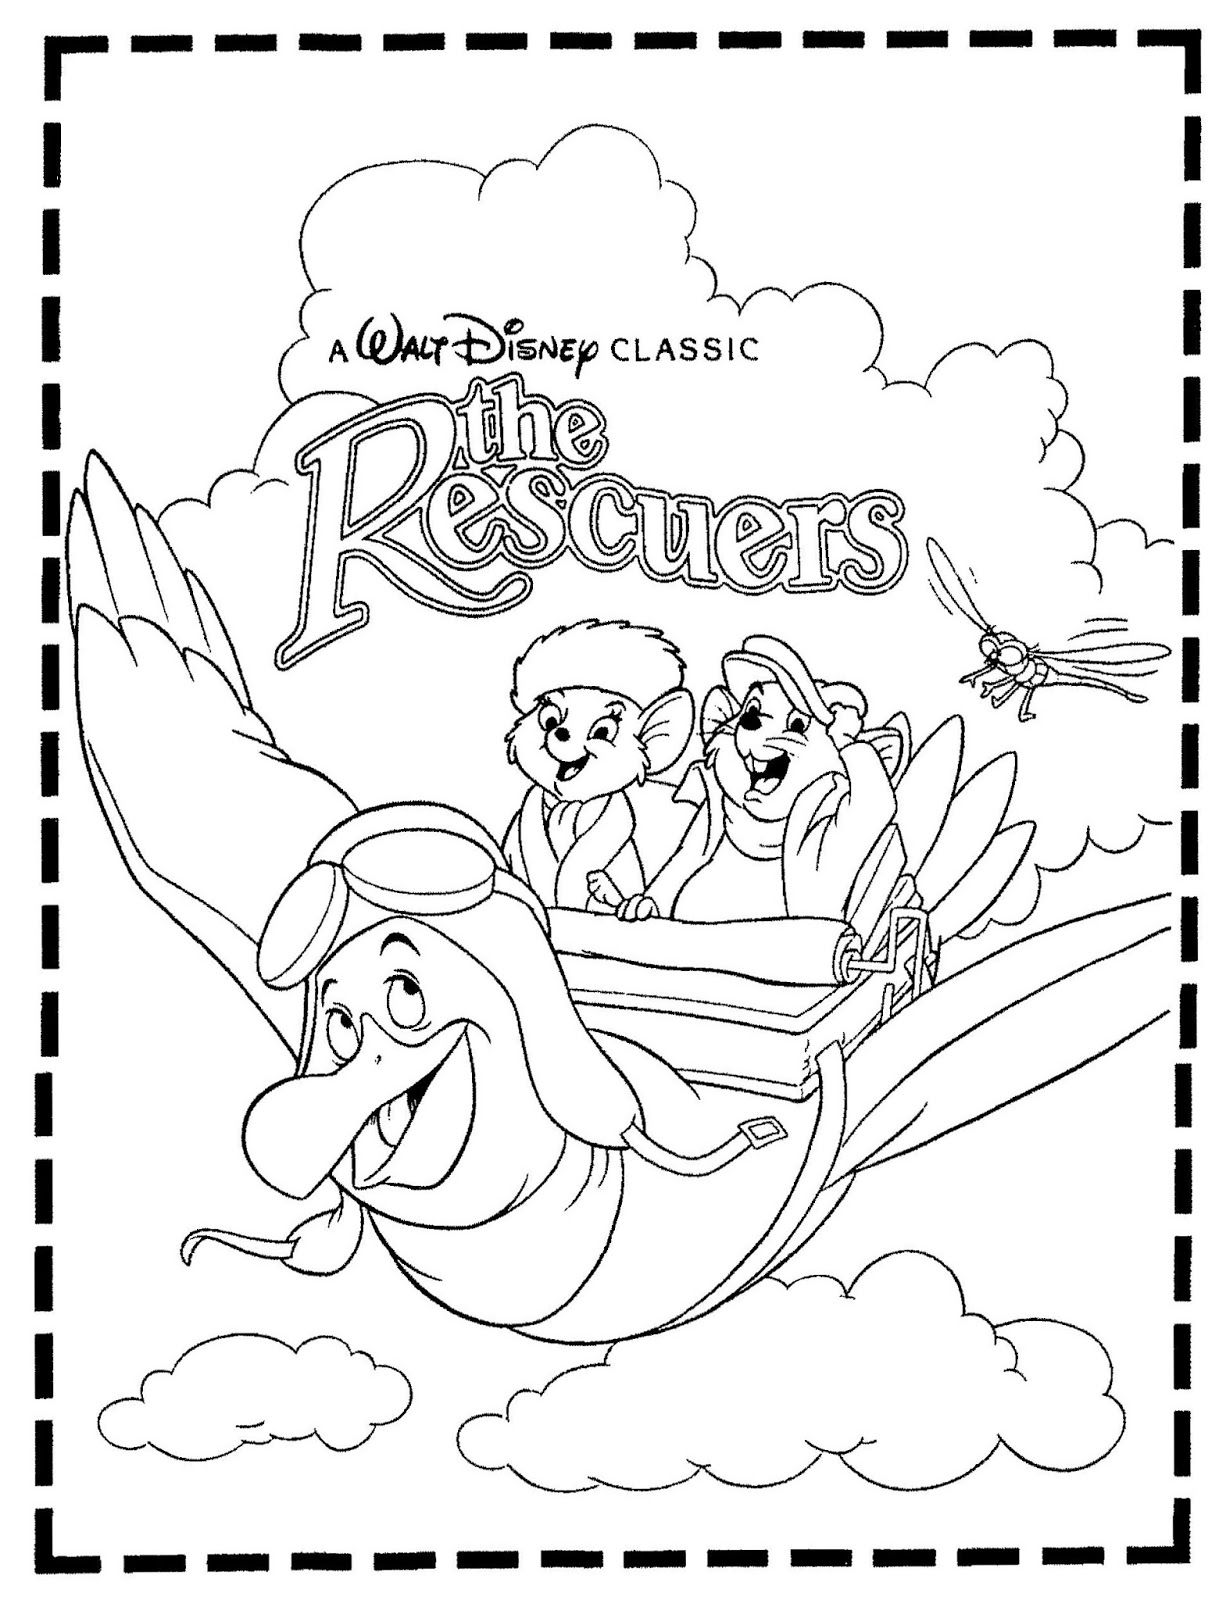 Mostly Paper Dolls Too The Rescuers Movie Coloring